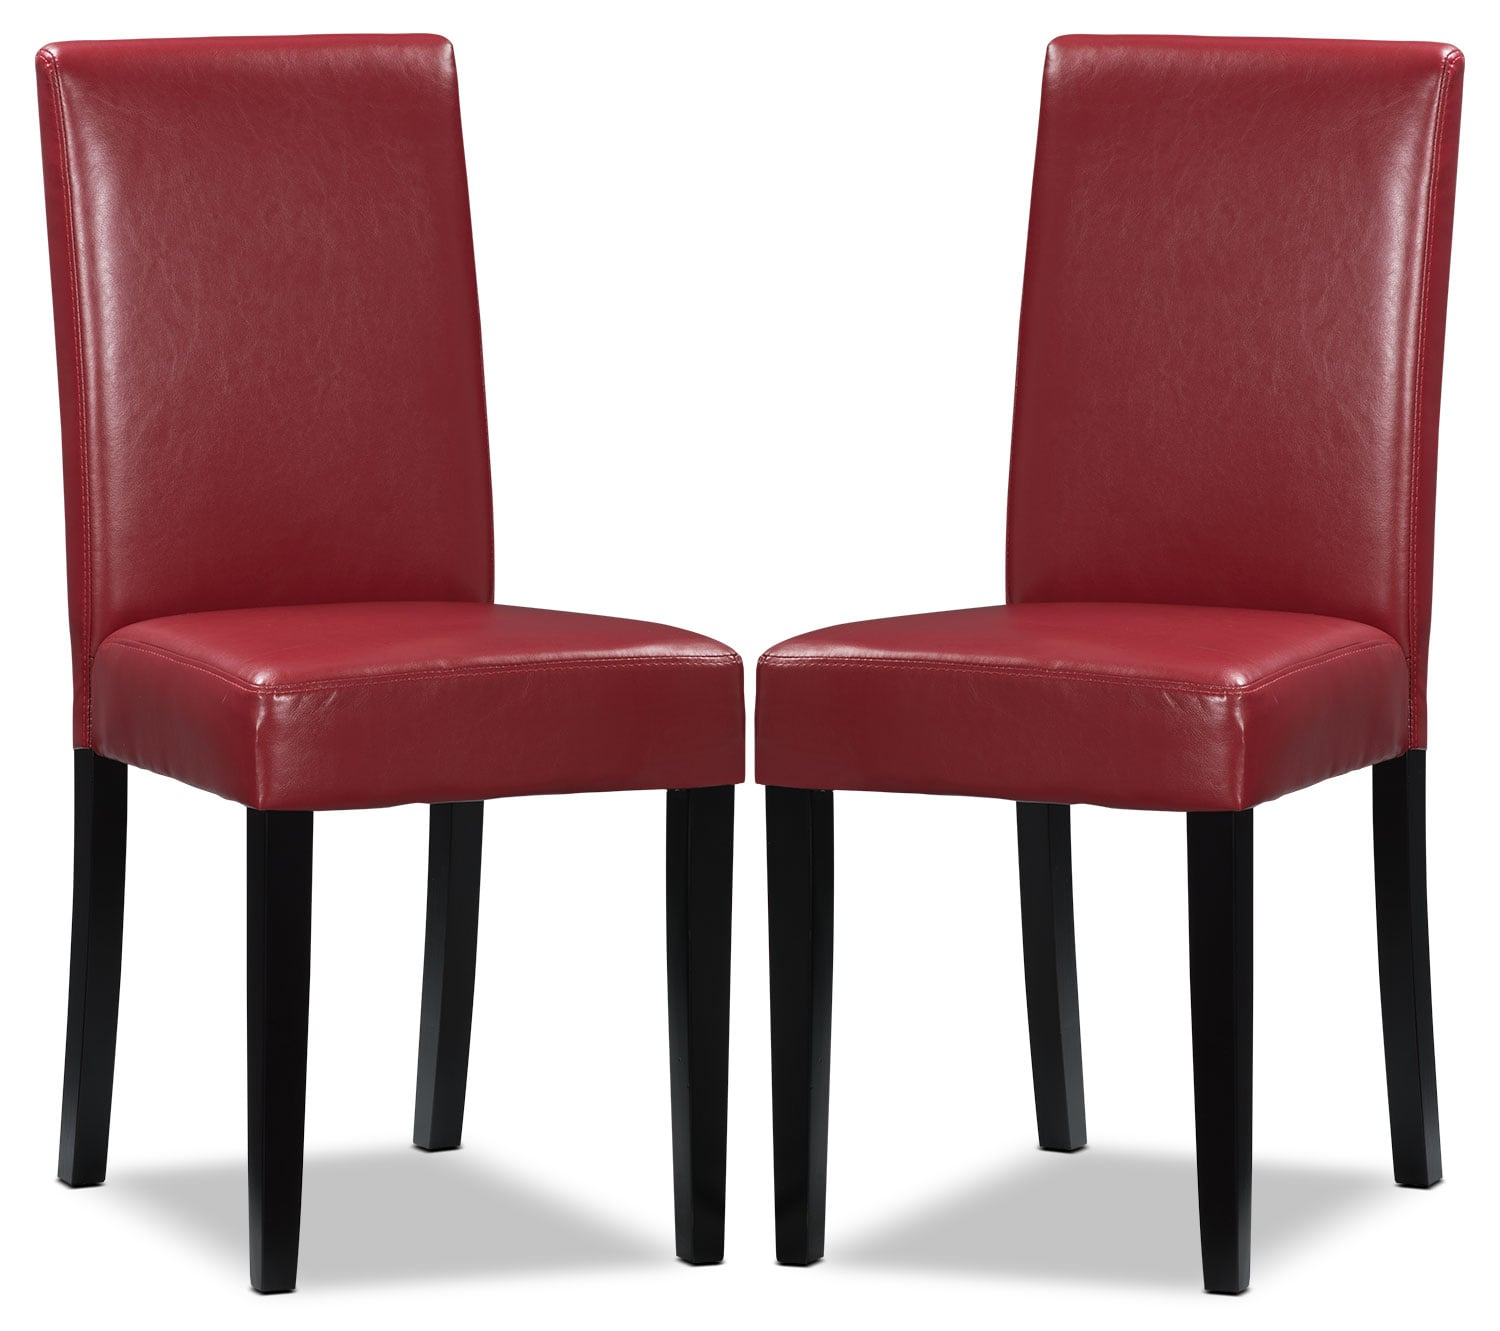 Red faux leather accent dining chair set of 2 the brick for Red dining room chairs